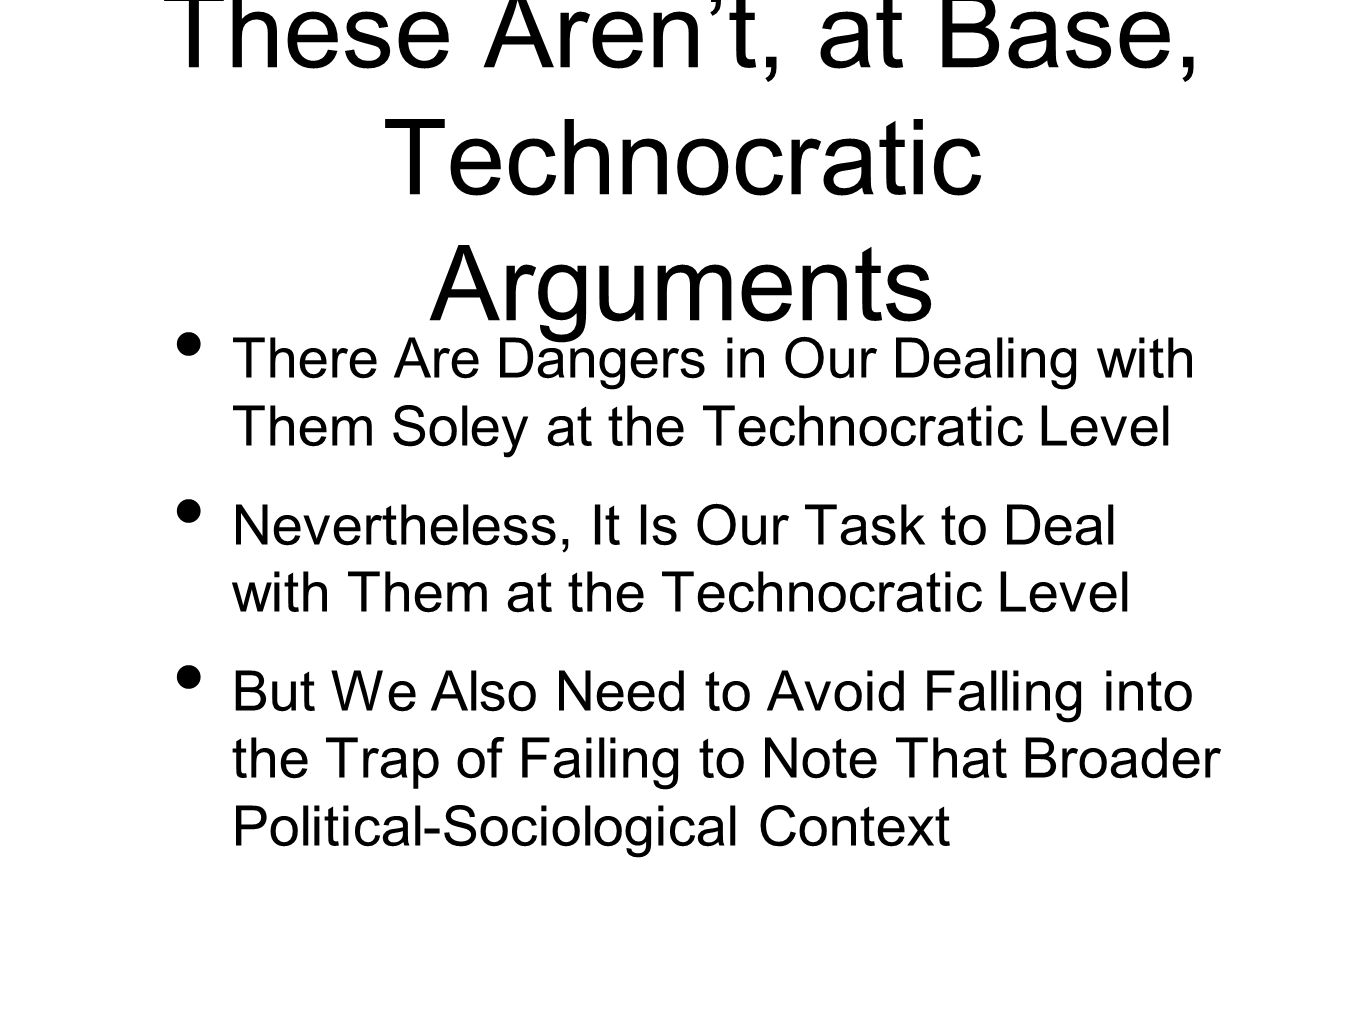 These Arent, at Base, Technocratic Arguments There Are Dangers in Our Dealing with Them Soley at the Technocratic Level Nevertheless, It Is Our Task to Deal with Them at the Technocratic Level But We Also Need to Avoid Falling into the Trap of Failing to Note That Broader Political-Sociological Context